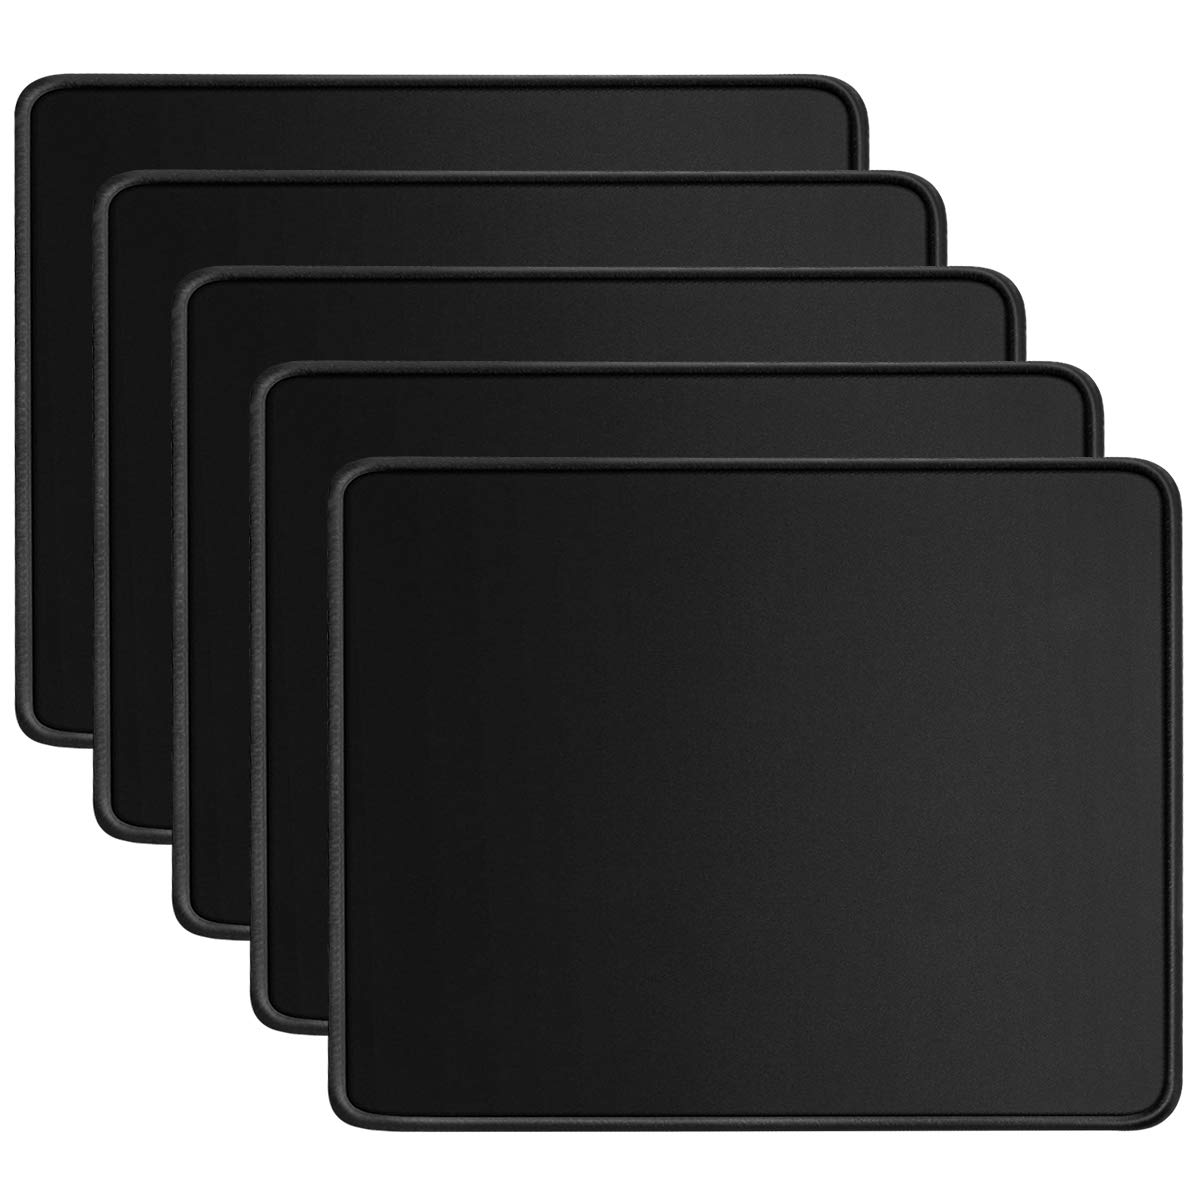 HONESTY Standard Size Mouse Pad with Stitched Edges 10.2×8.3×0.8 inches Black Premium-Textured Mouse Mat Pad Non-Slip Rubber Base Mouse Pad (5 pack)